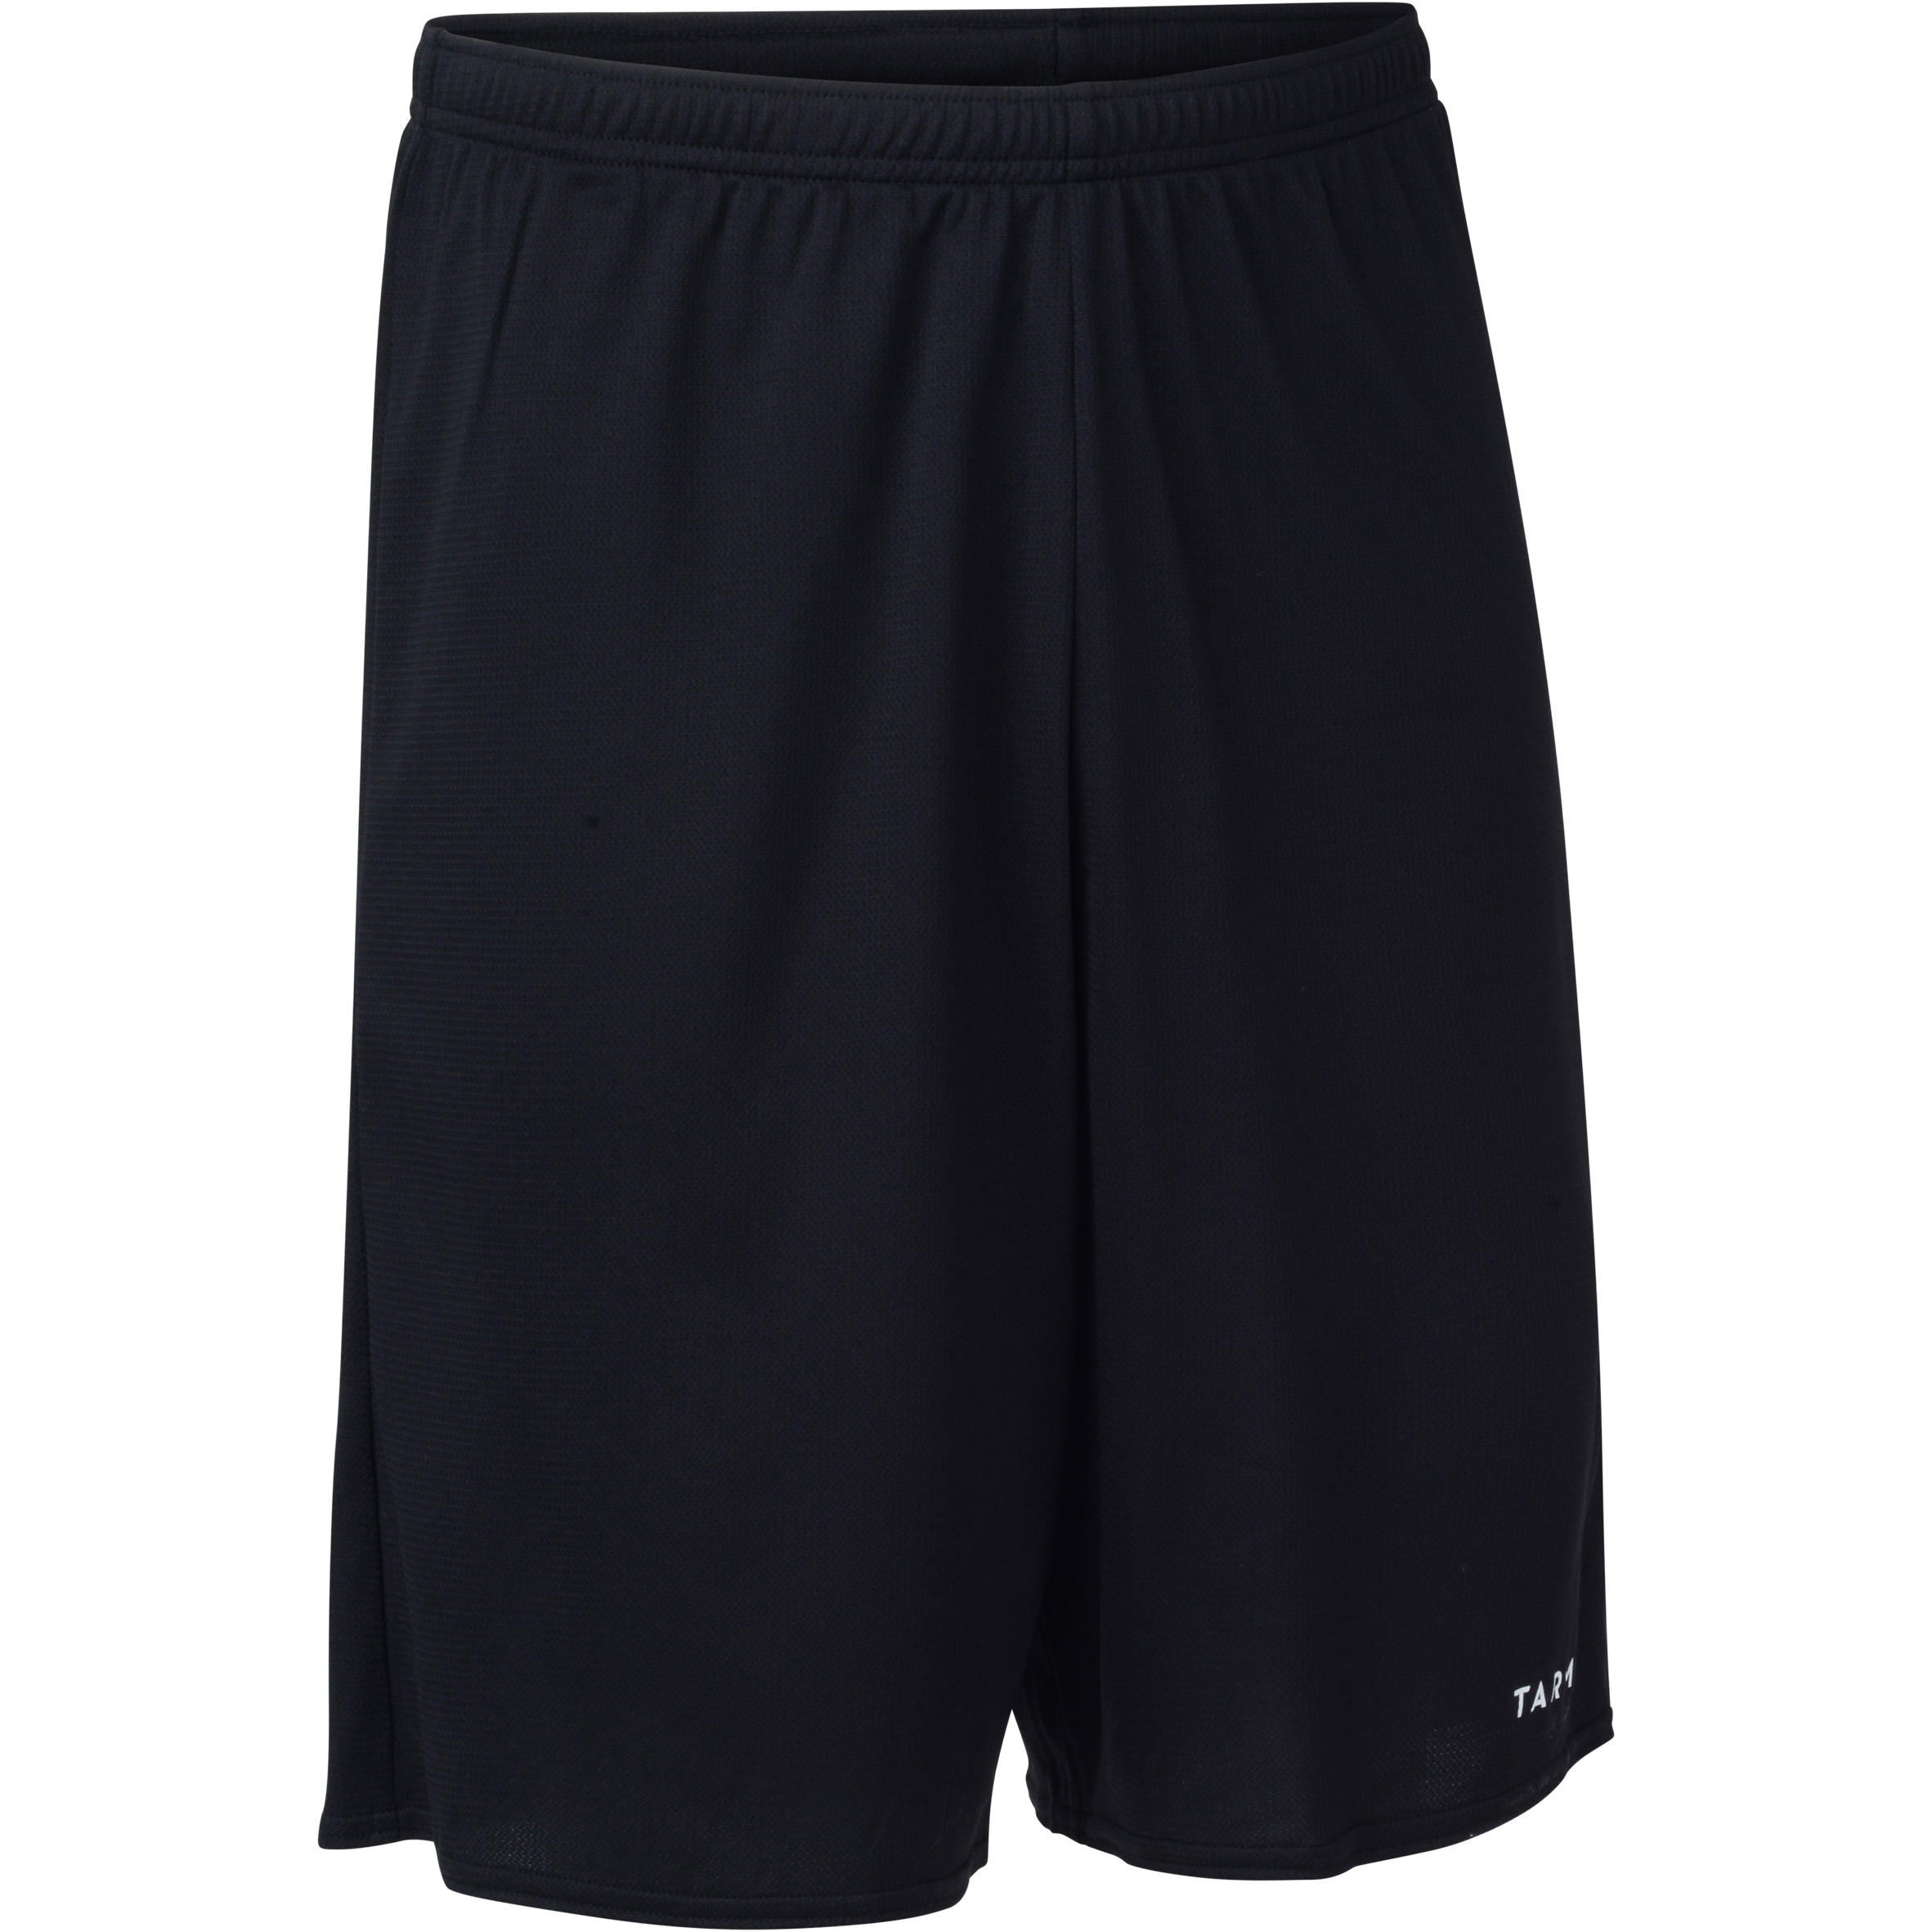 Short de basketball B300 homme noir